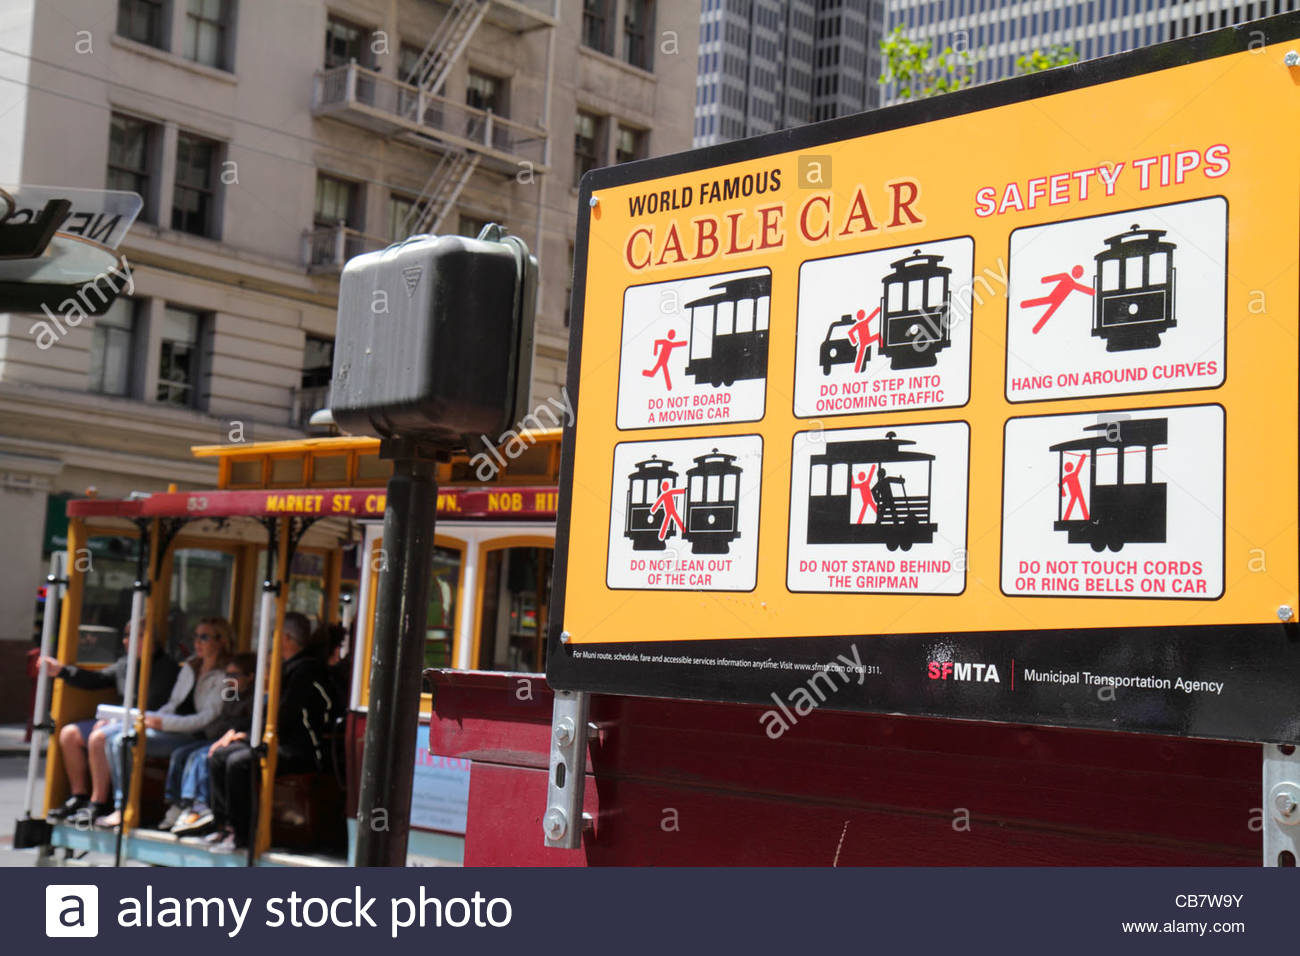 San Francisco California Market Street near Spear Street cable car safety tips sign MTA stop passenger information - Stock Image